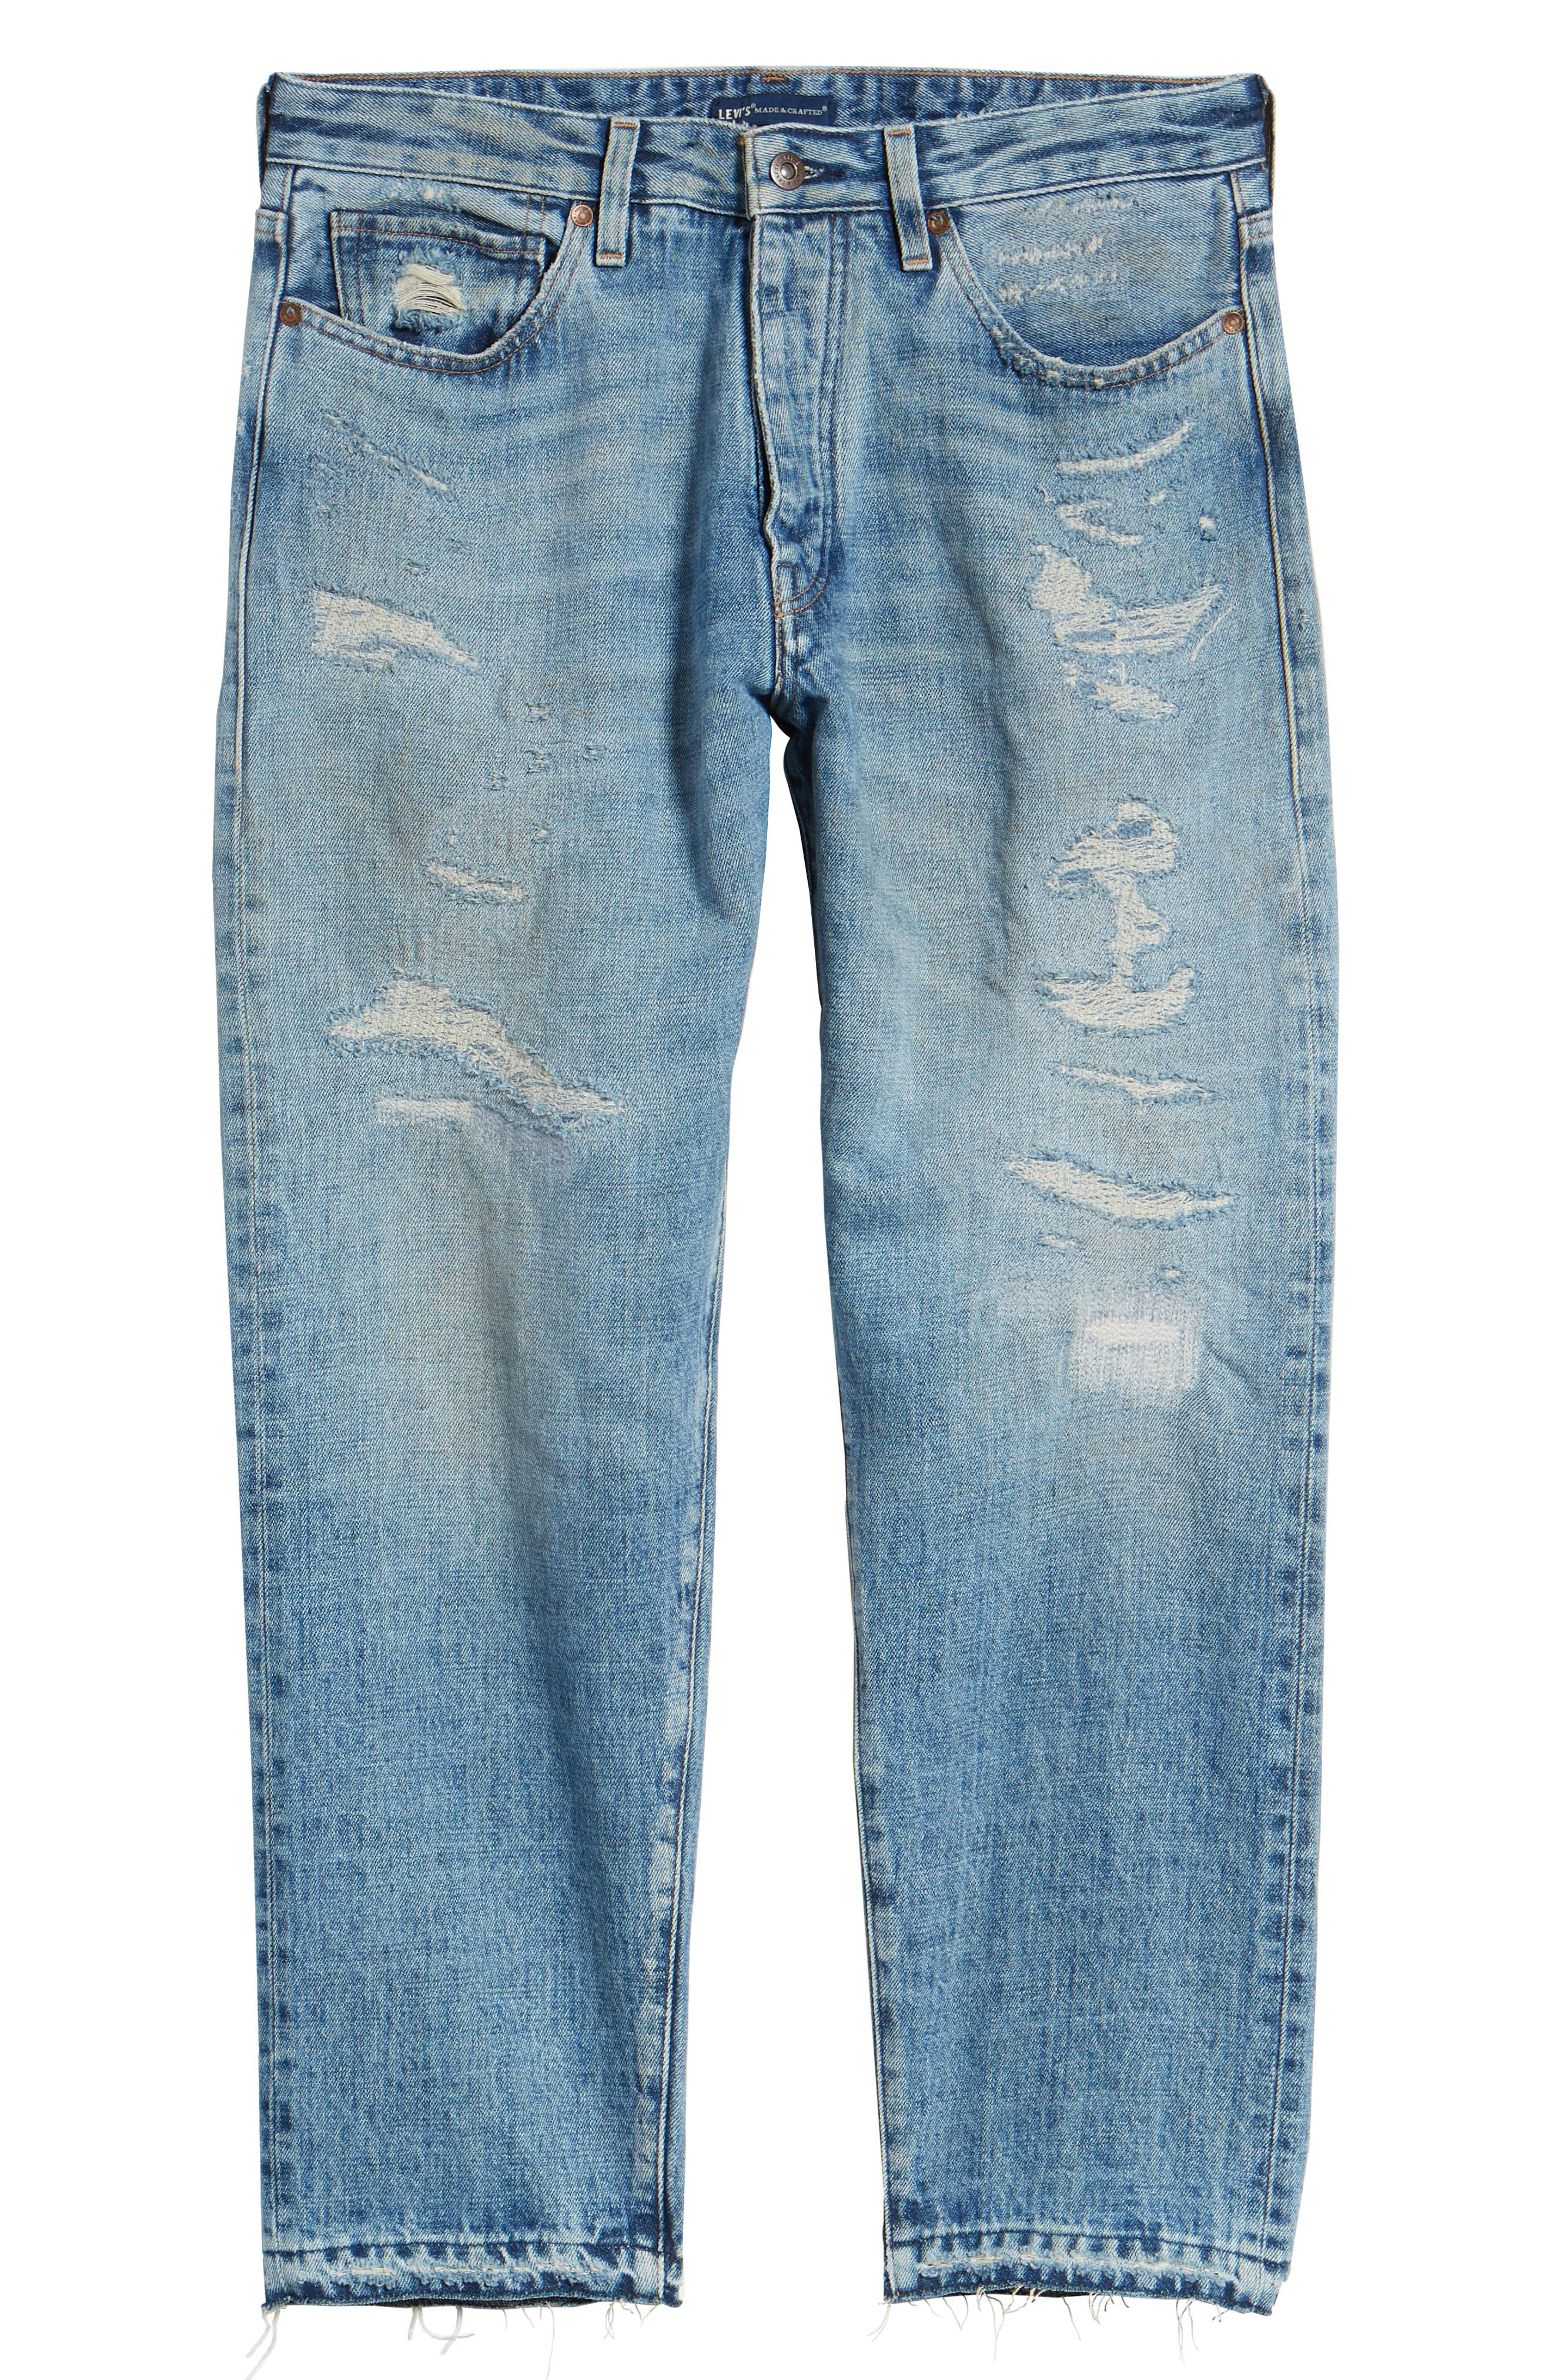 Draft Taper Standard Fit Jeans,                             Alternate thumbnail 6, color,                             Banzai Pipeline